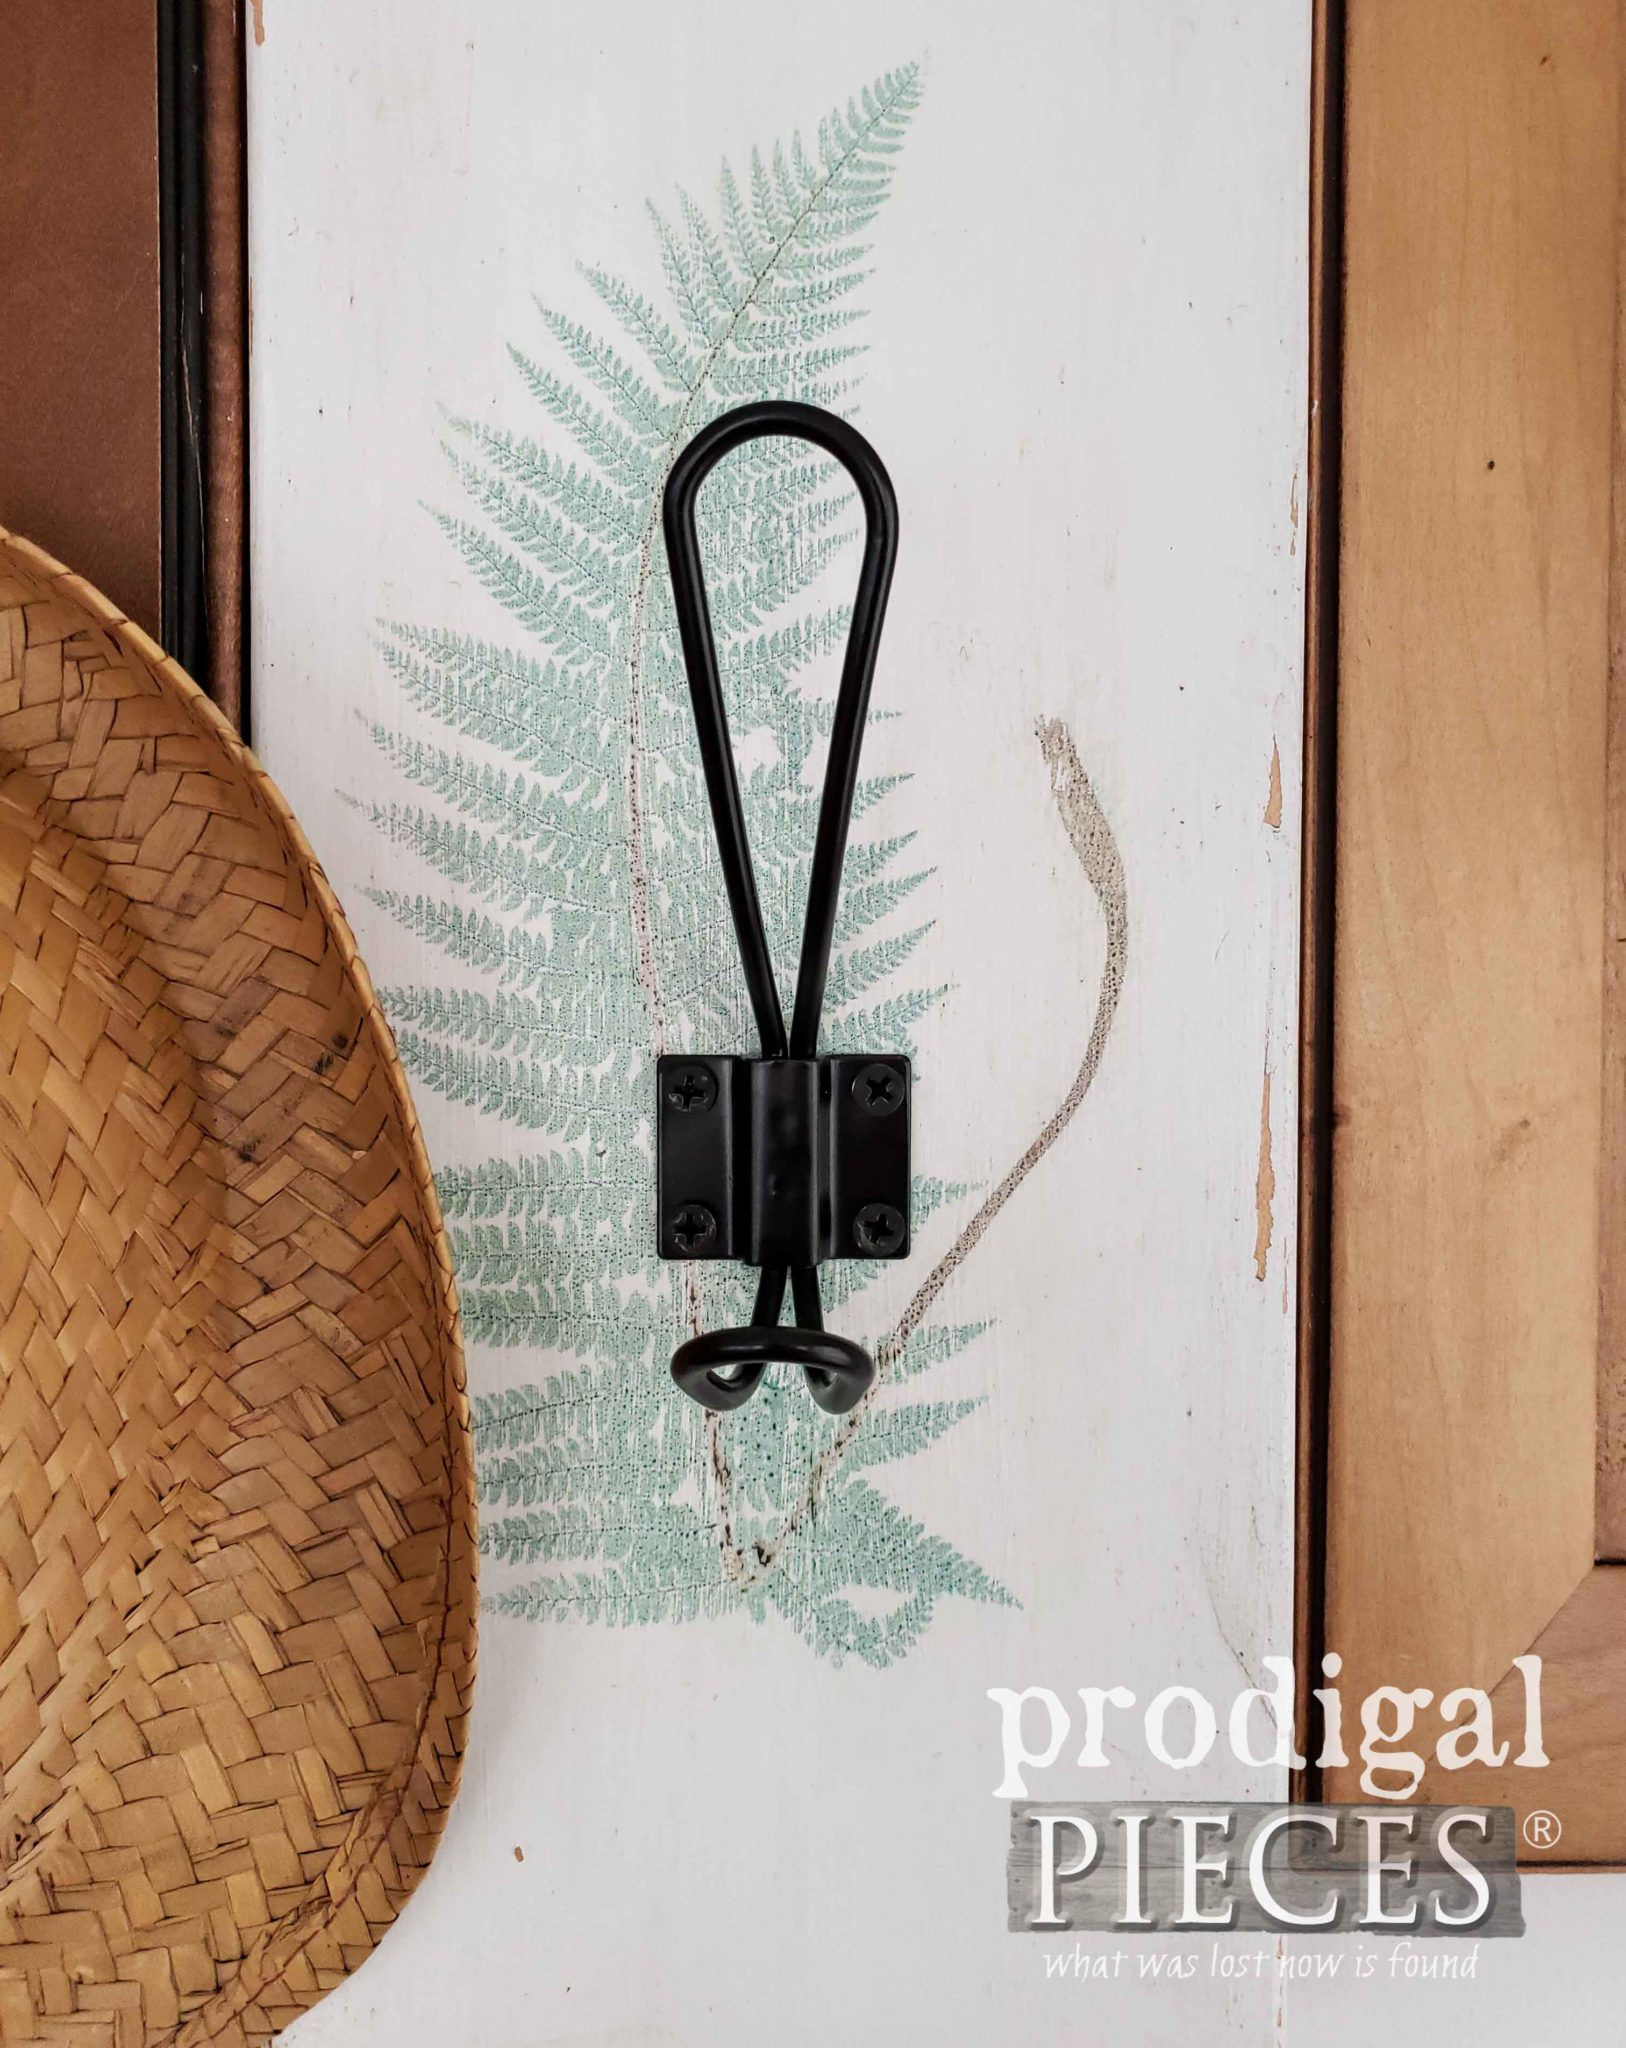 Botanical Fern Art on Modern Chic Coat Rack by Prodigal Pieces | prodigalpieces.com #prodigalpieces #diy #handmade #home #farmhouse #homedecor #homedecorideas